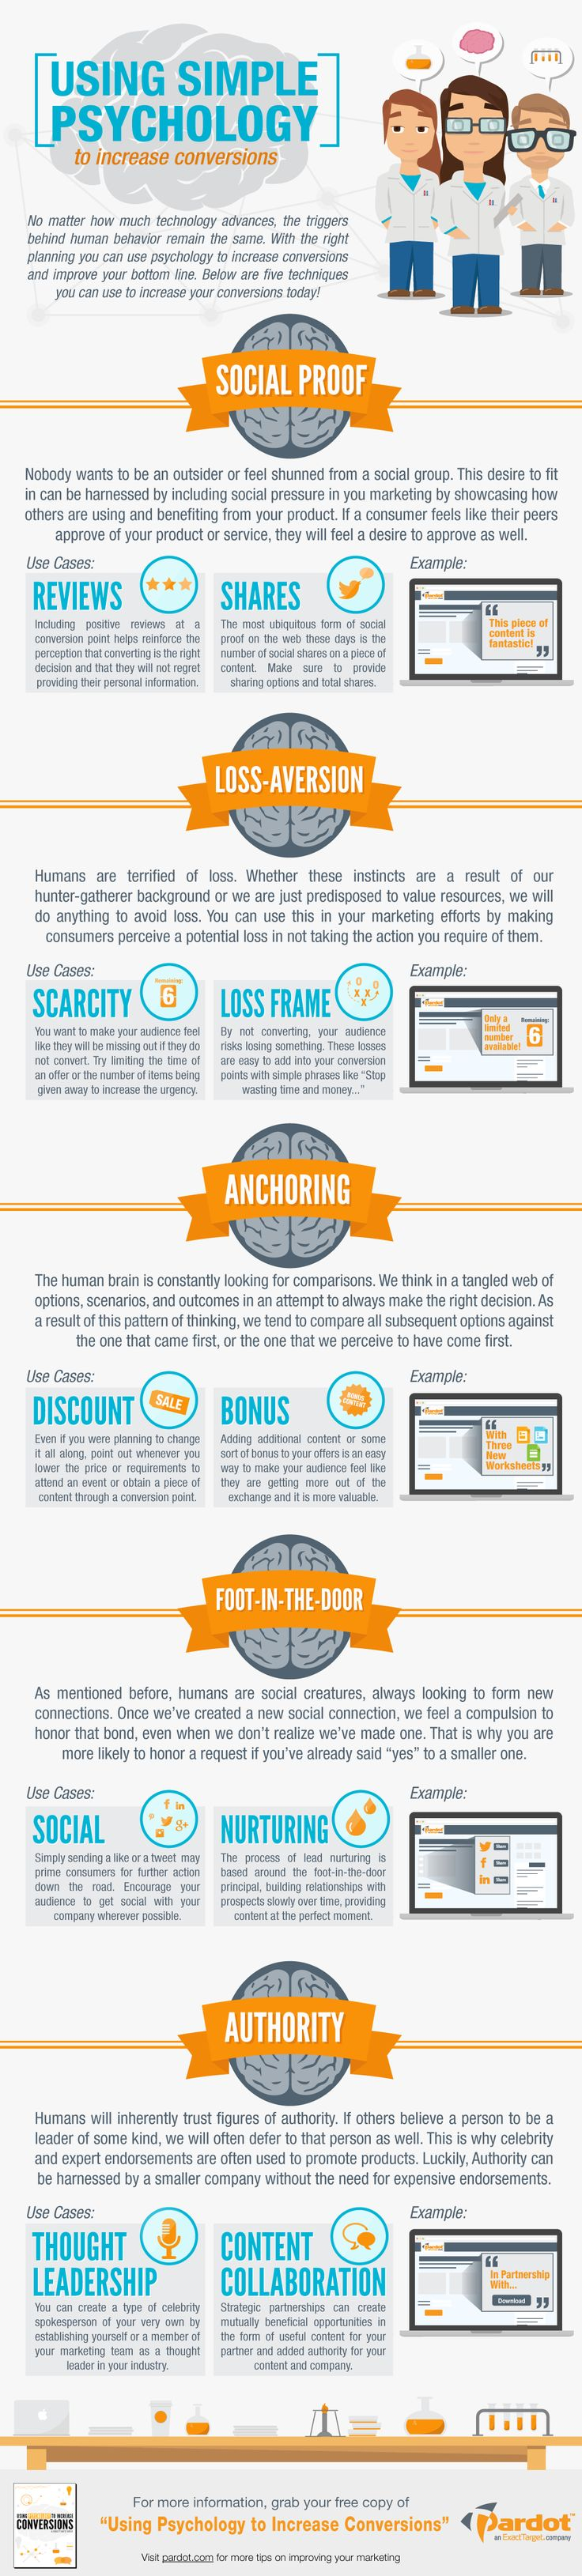 #INFOgraphic > 5 Conversion Rate Tips: Online marketers,  have a look at these five keen techniques based on the principles of behavioral psychology theory that will help you spike the conversion rates of your marketing campaigns and crowd the sales funnel.